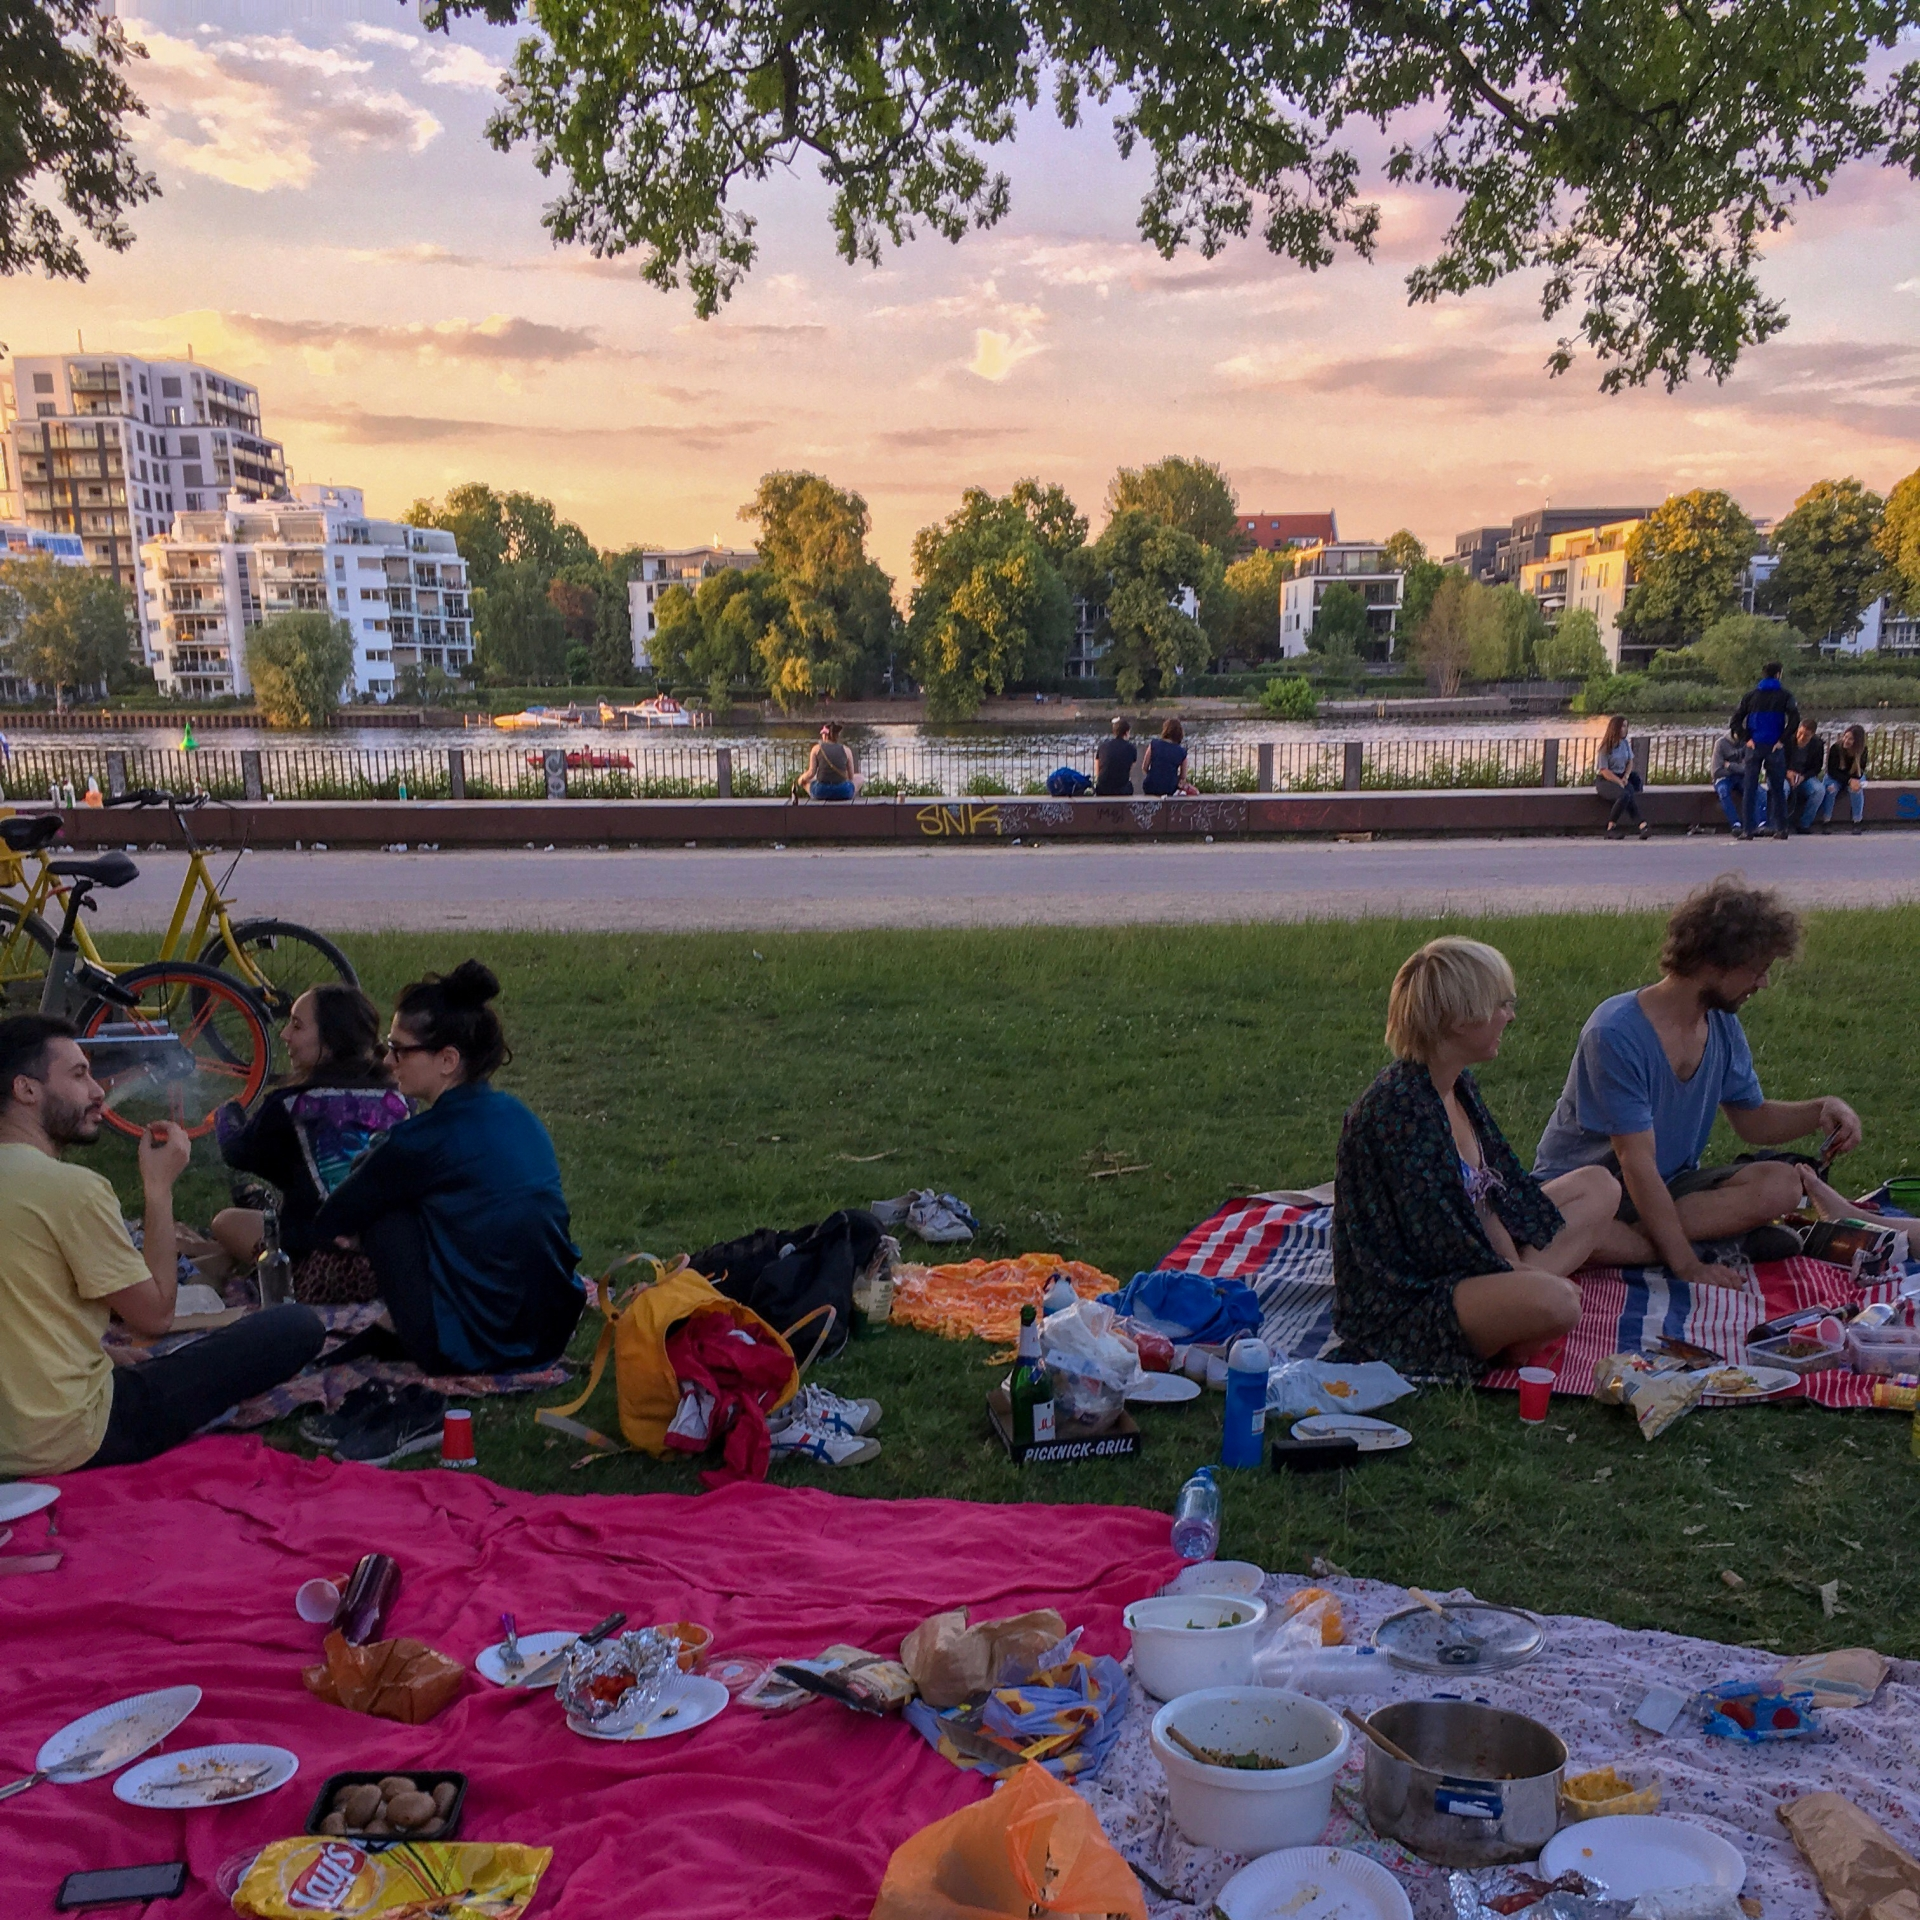 Picnic at Treptower park as the sun sets